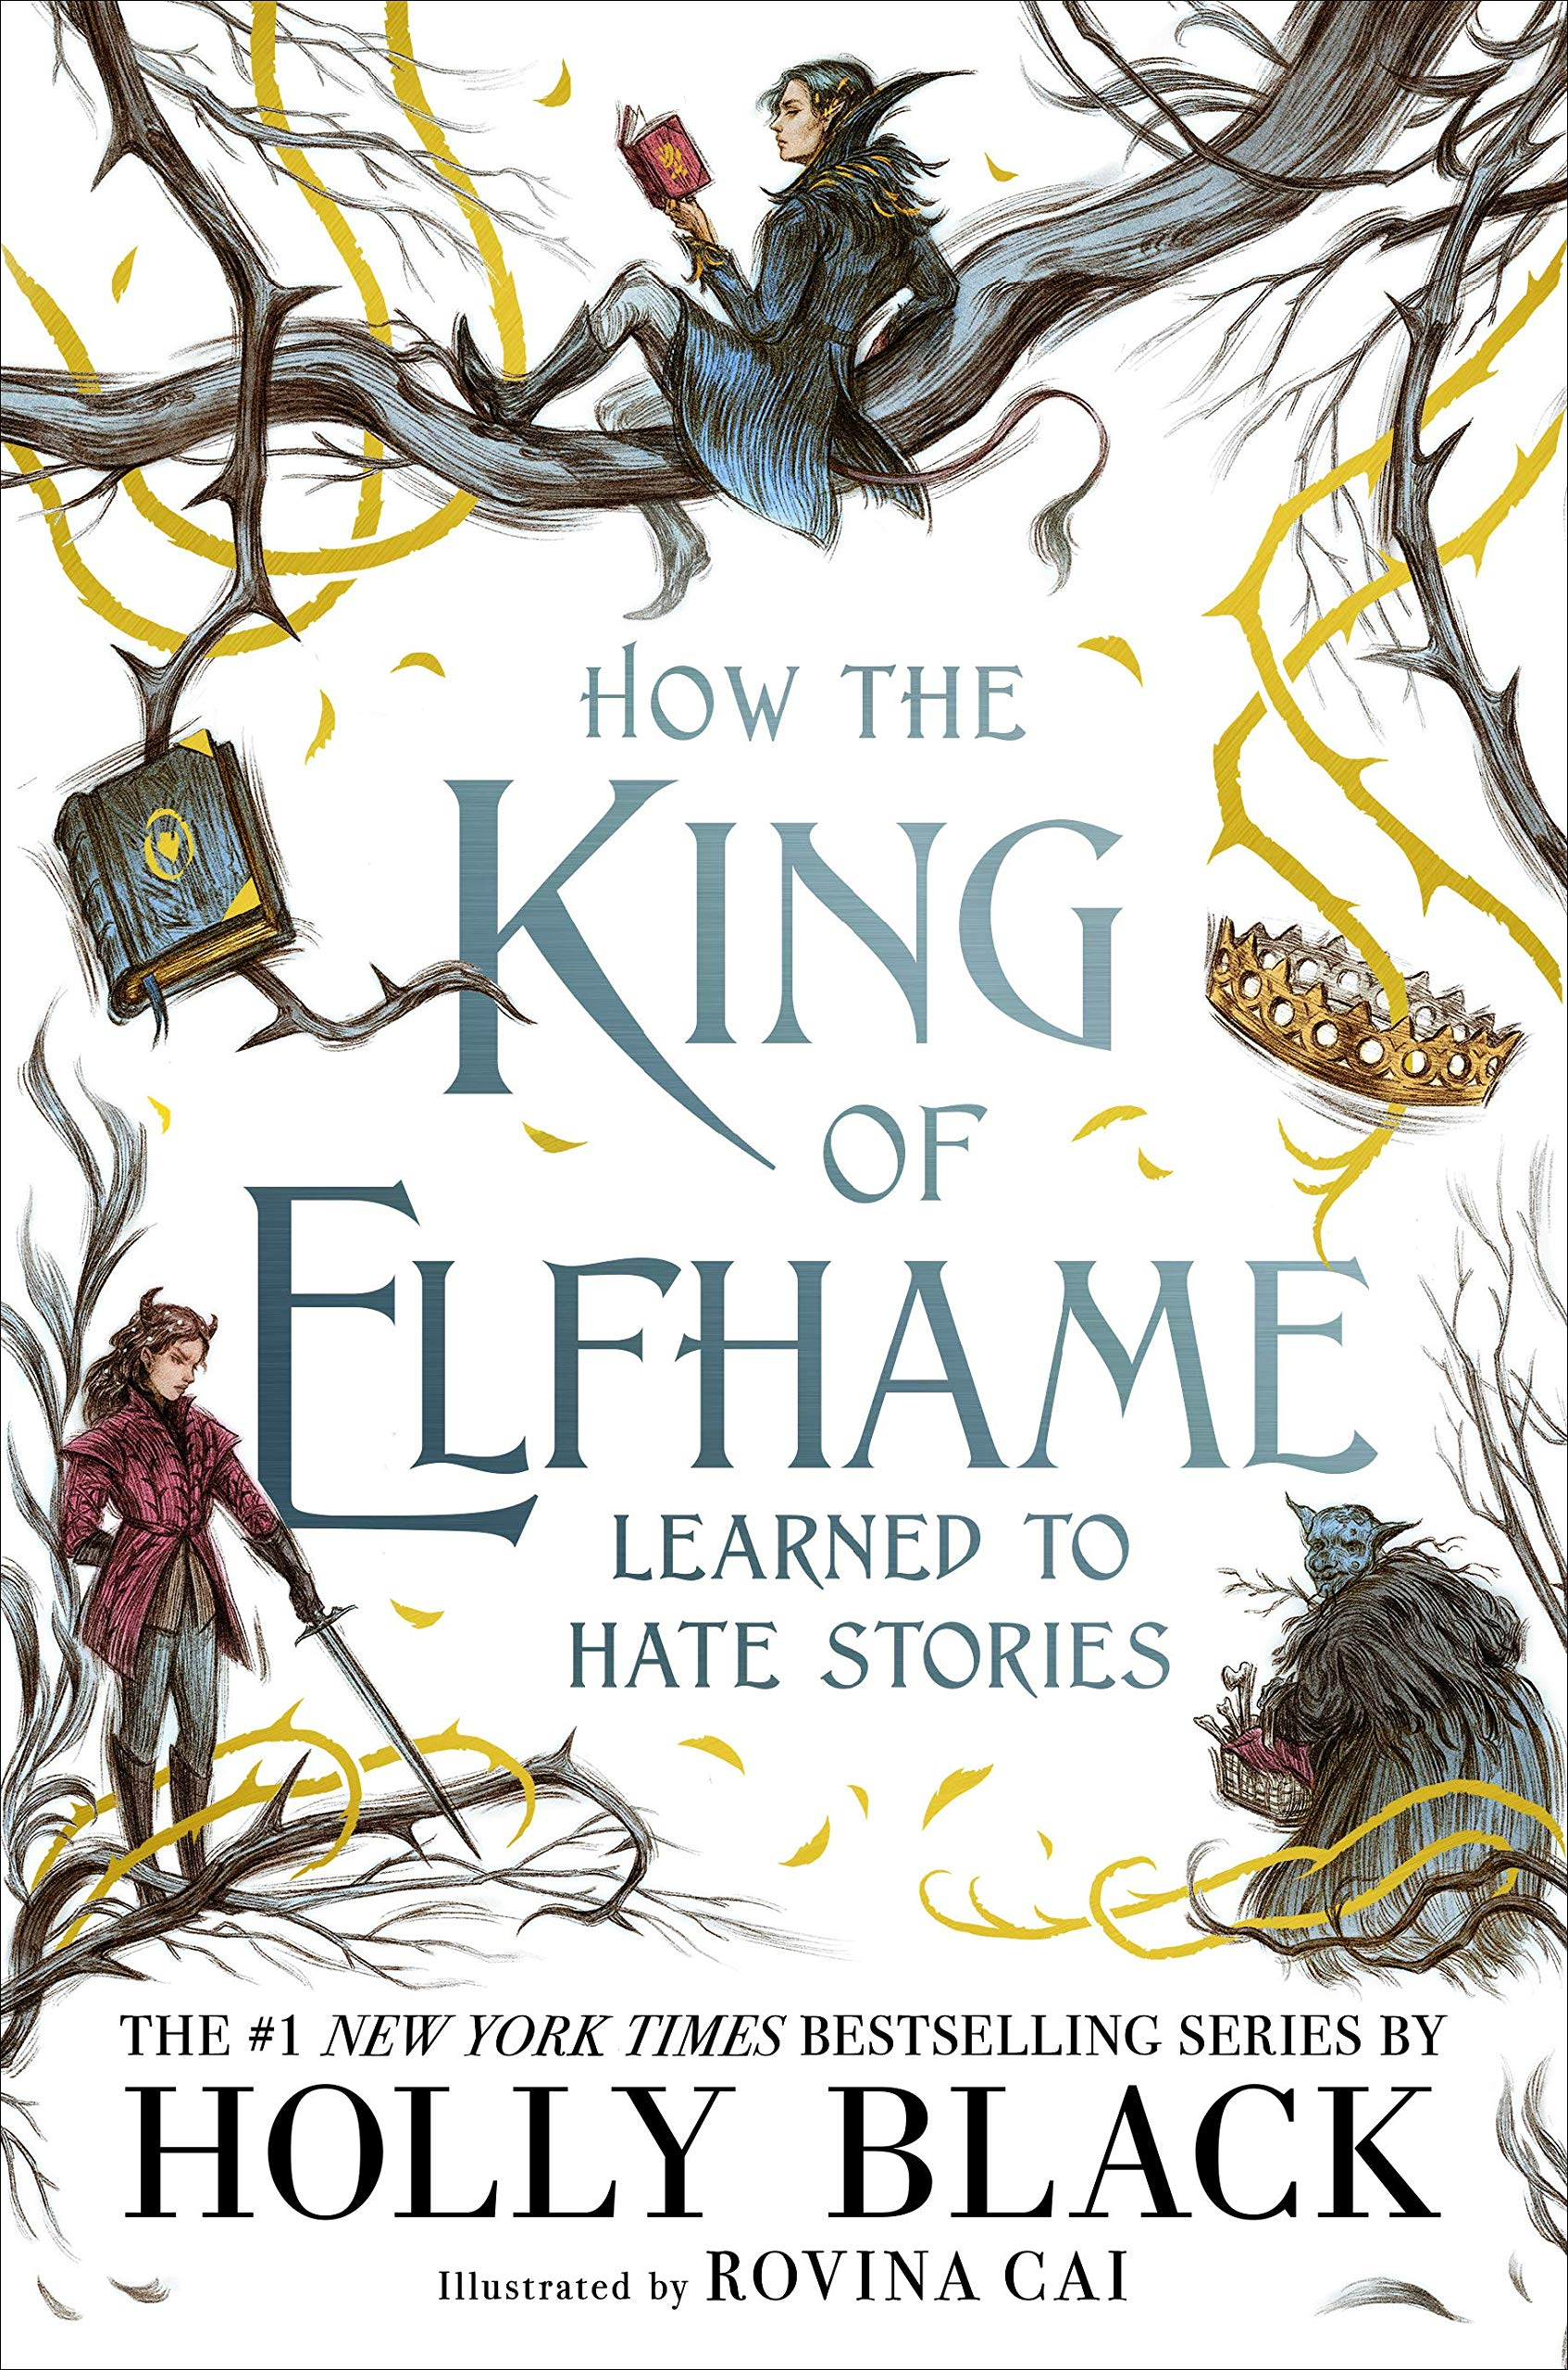 Amazon.com: How the King of Elfhame Learned to Hate Stories (The Folk of  the Air) (9780316540889): Black, Holly: Books